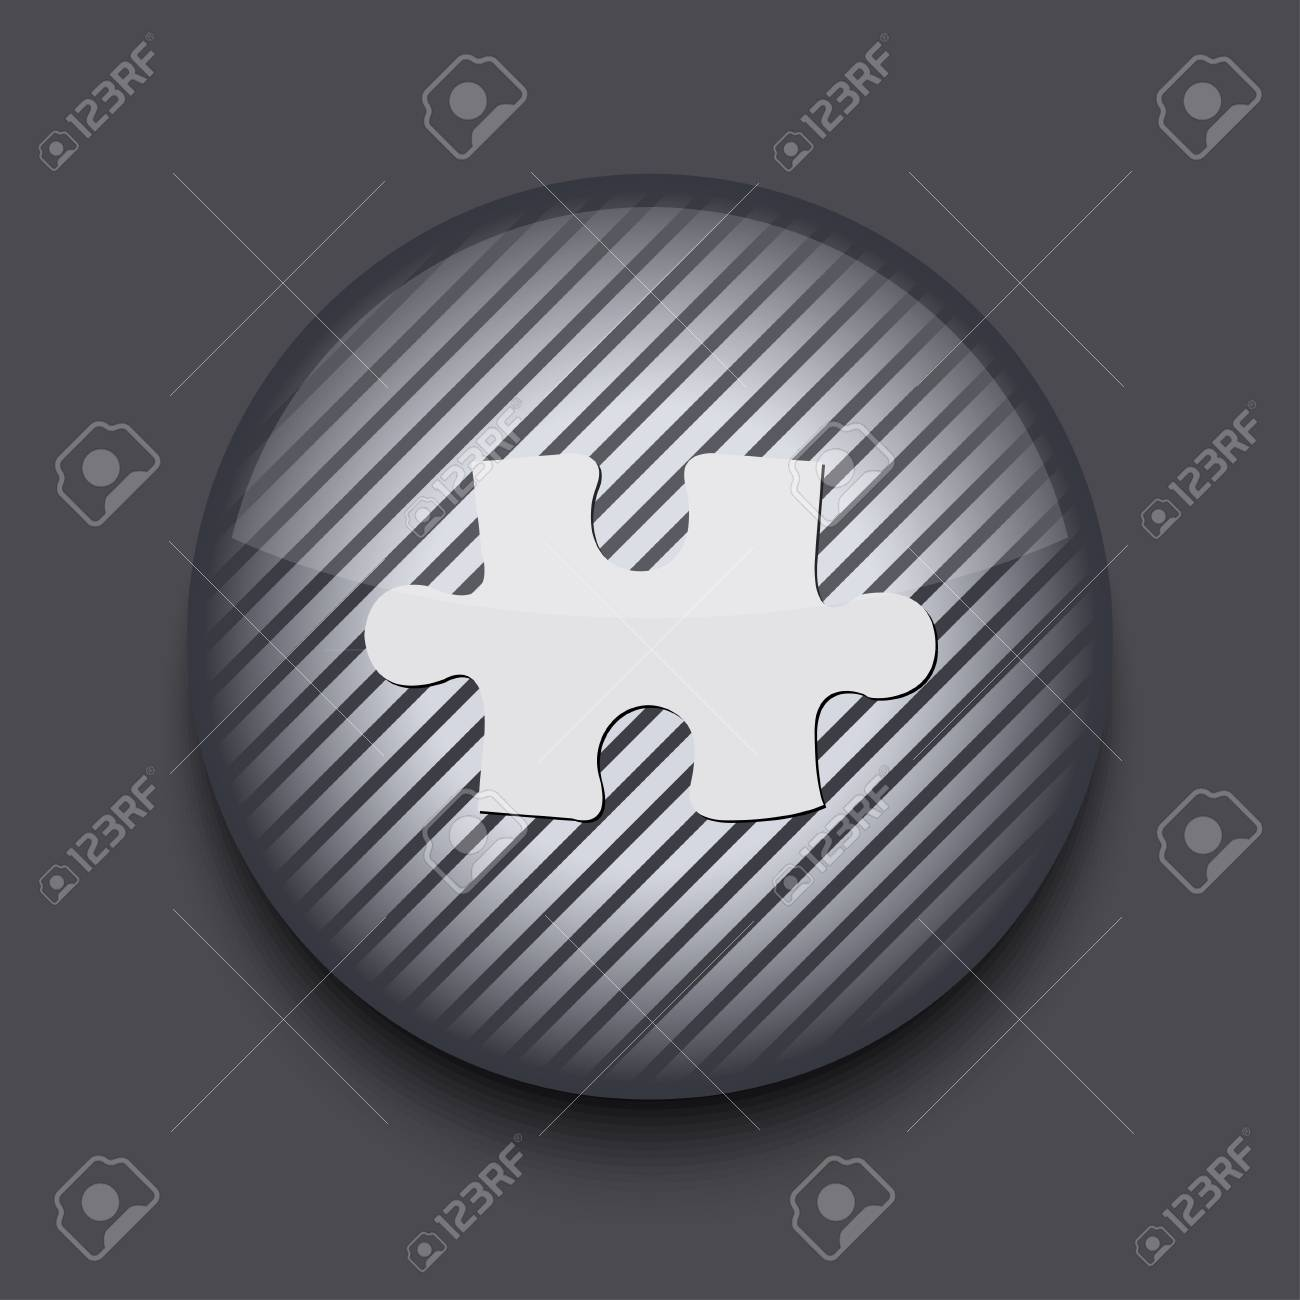 Vector app circle striped icon on gray background. Eps 10 Stock Vector - 16773406